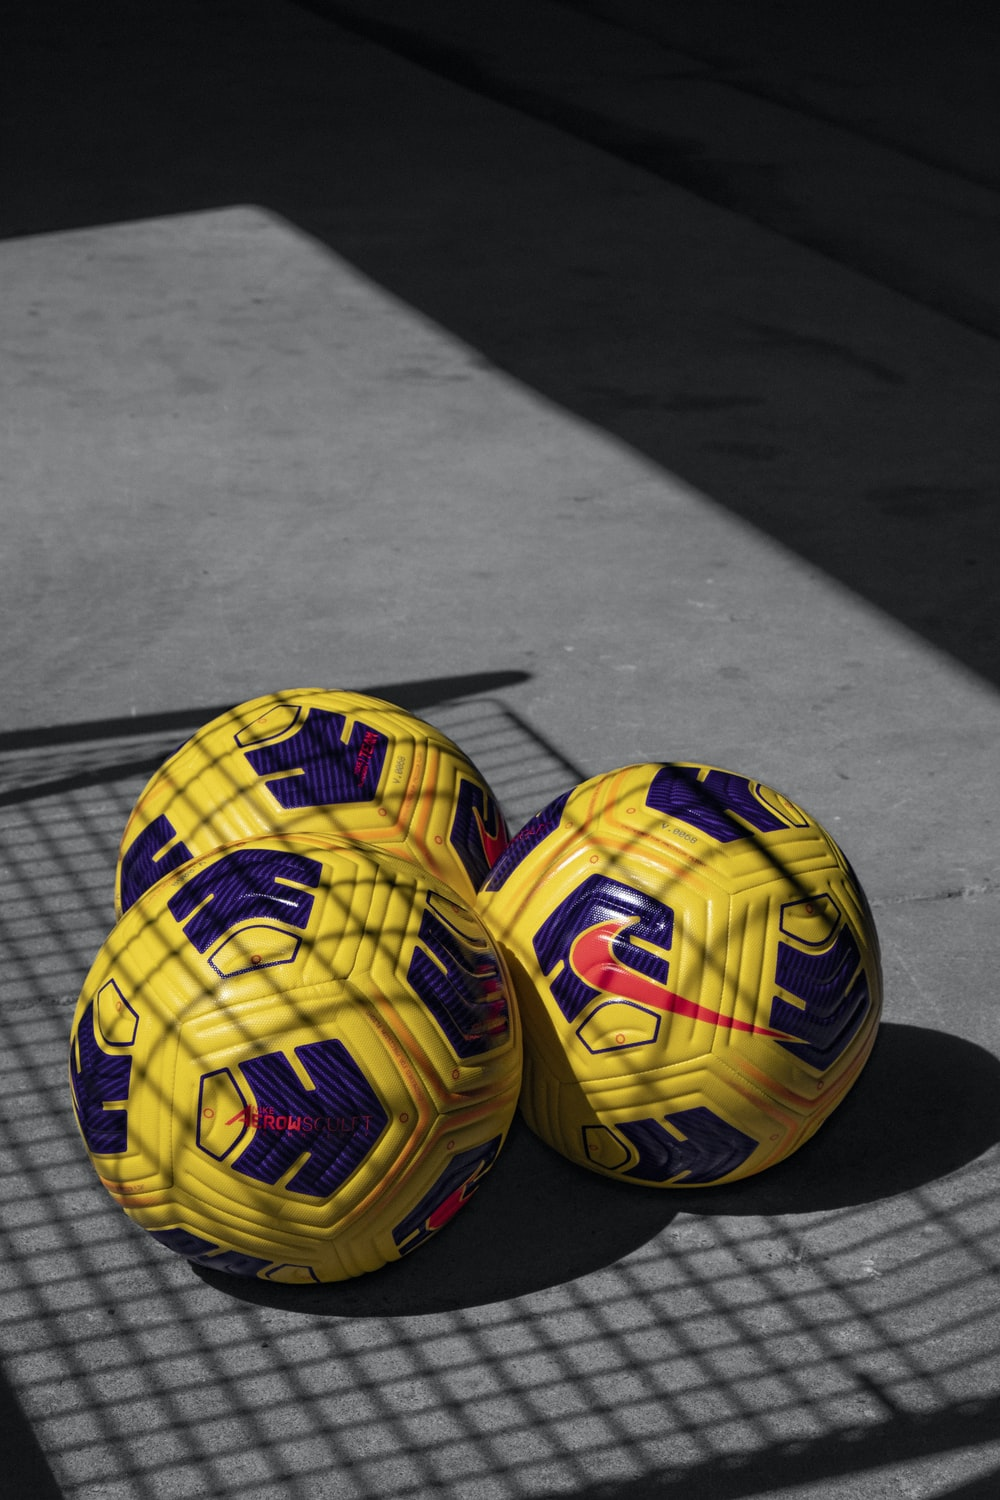 yellow and black soccer ball on gray wooden floor